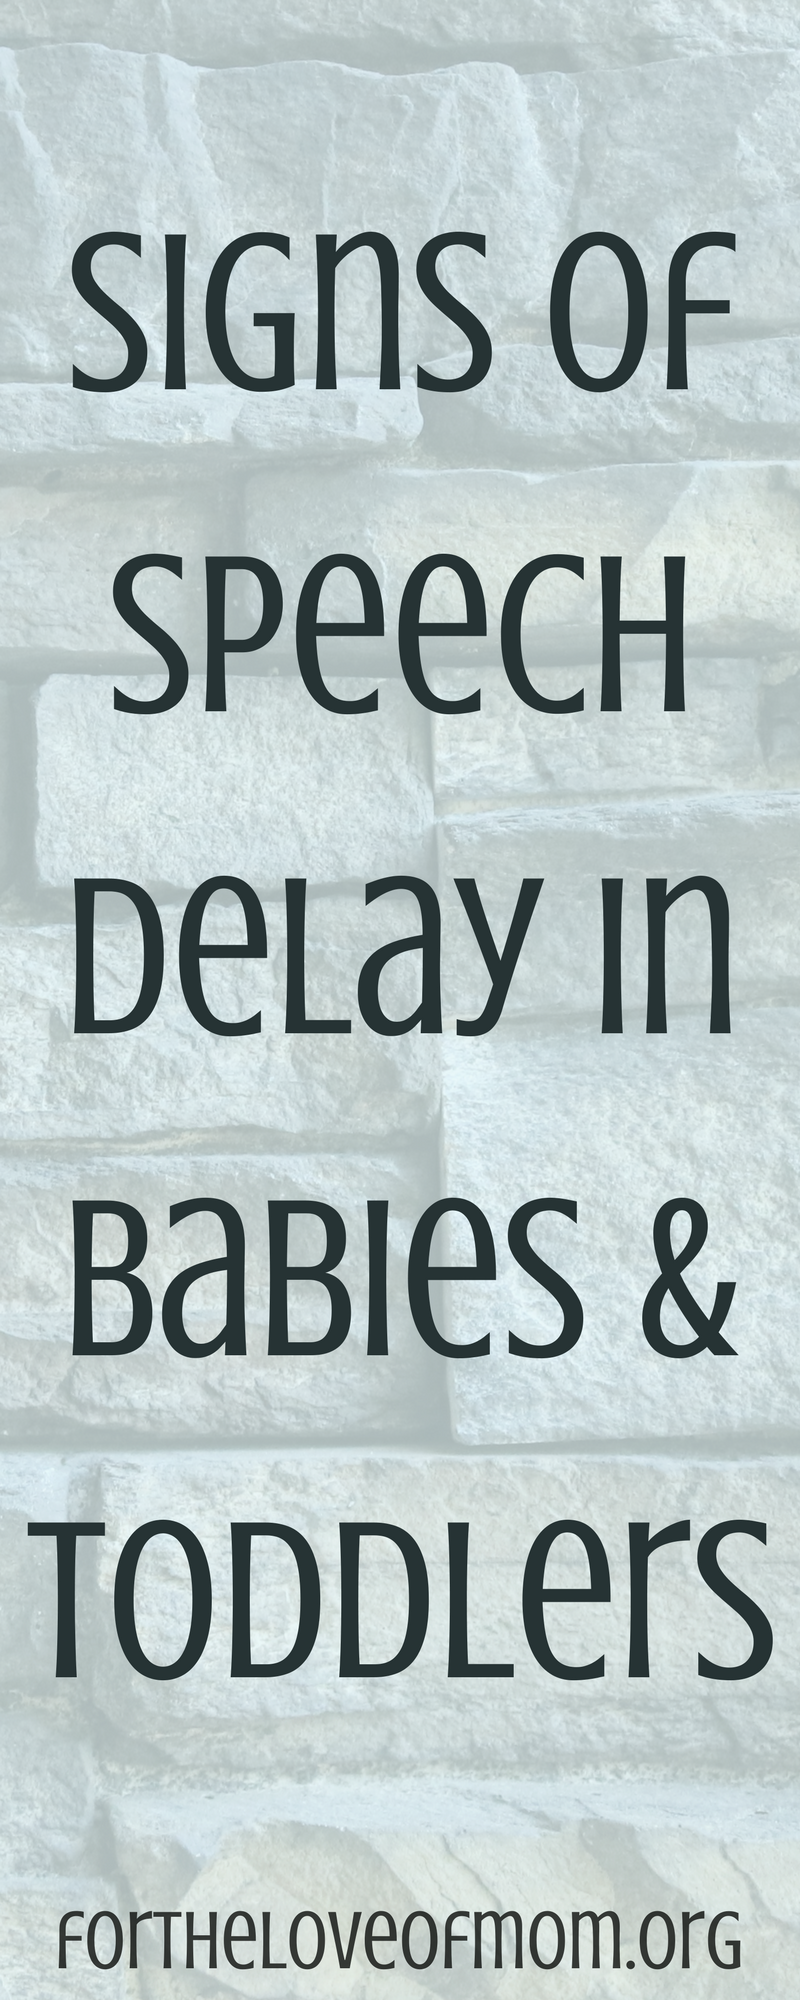 Signs of Speech Delay in Babies & Toddlers | How to Recognize Speech Delay | Tips for Moms | #speechdevelopment | #toddlers | #babies | #momlife | #parenting | www.fortheloveofmom.org